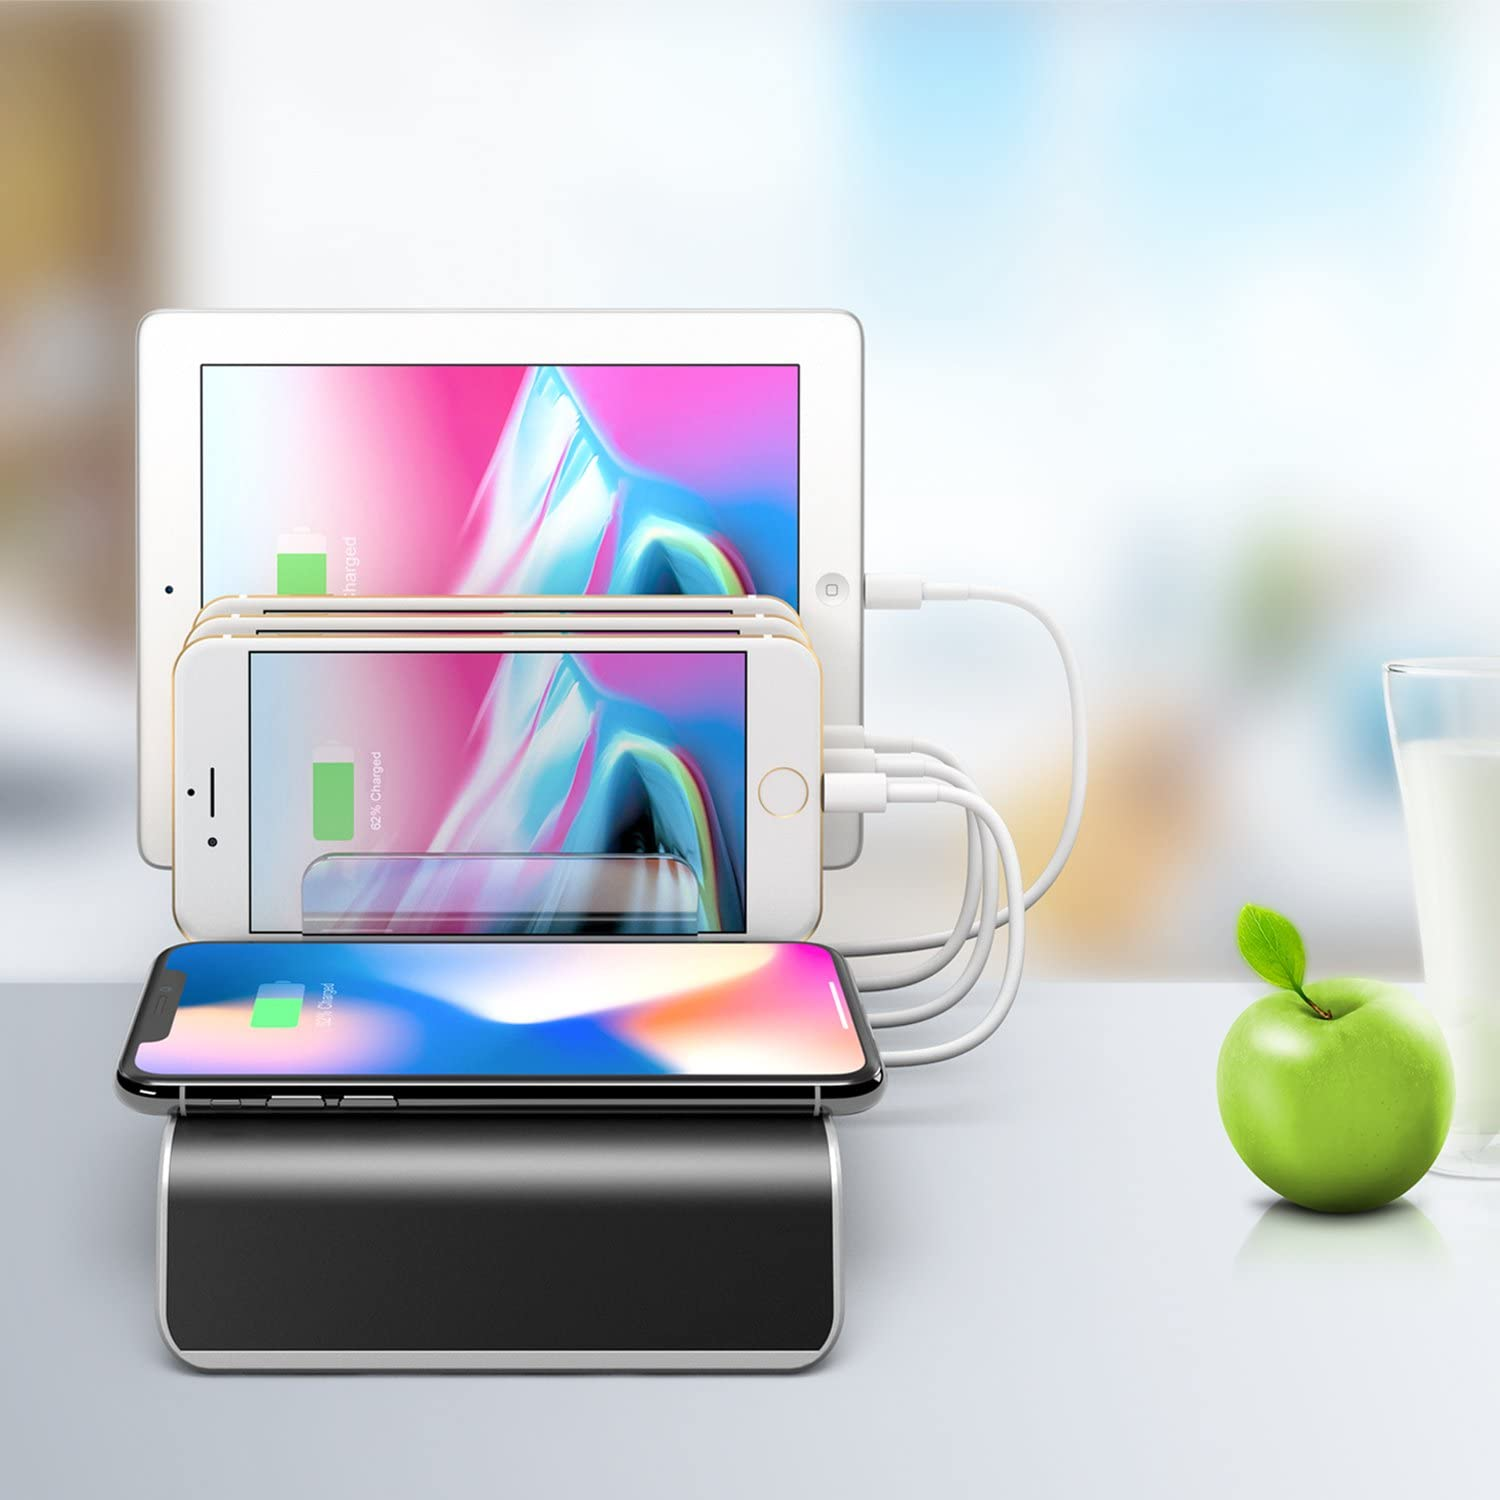 BTU Charging Stations for Multiple Devices 5-in-1 Desk Docking Station Organizer for iPhone Charging Stations 3 USB//1 Type-C Ports and 1 of QI Wireless Charging Pad for Phone